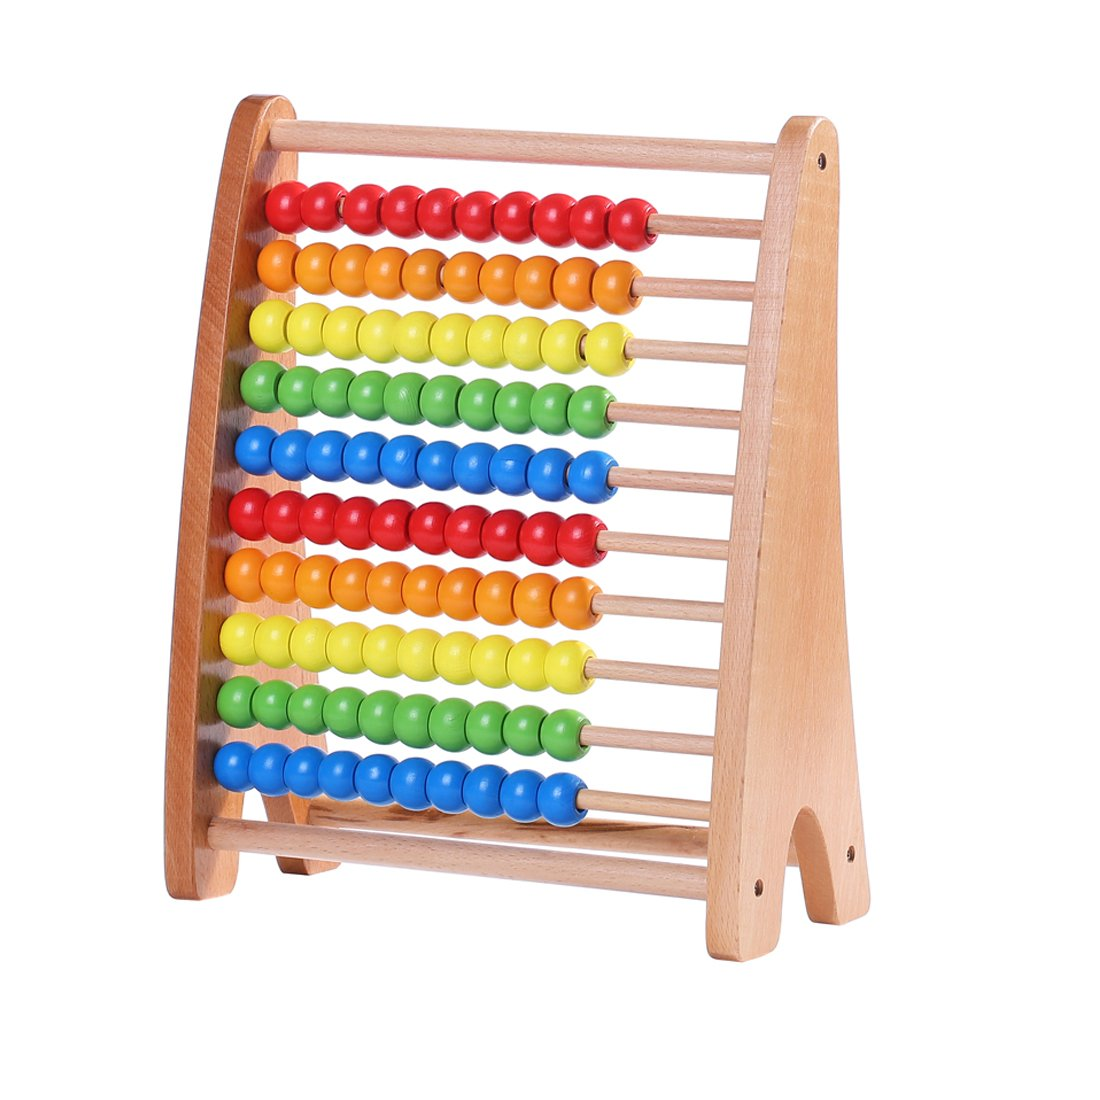 Wondertoys Wooden Abacus Educational Counting Toy 100 Beads Math Tool Toddler Gifts for 1 2 3 Year Old Boys and Girls